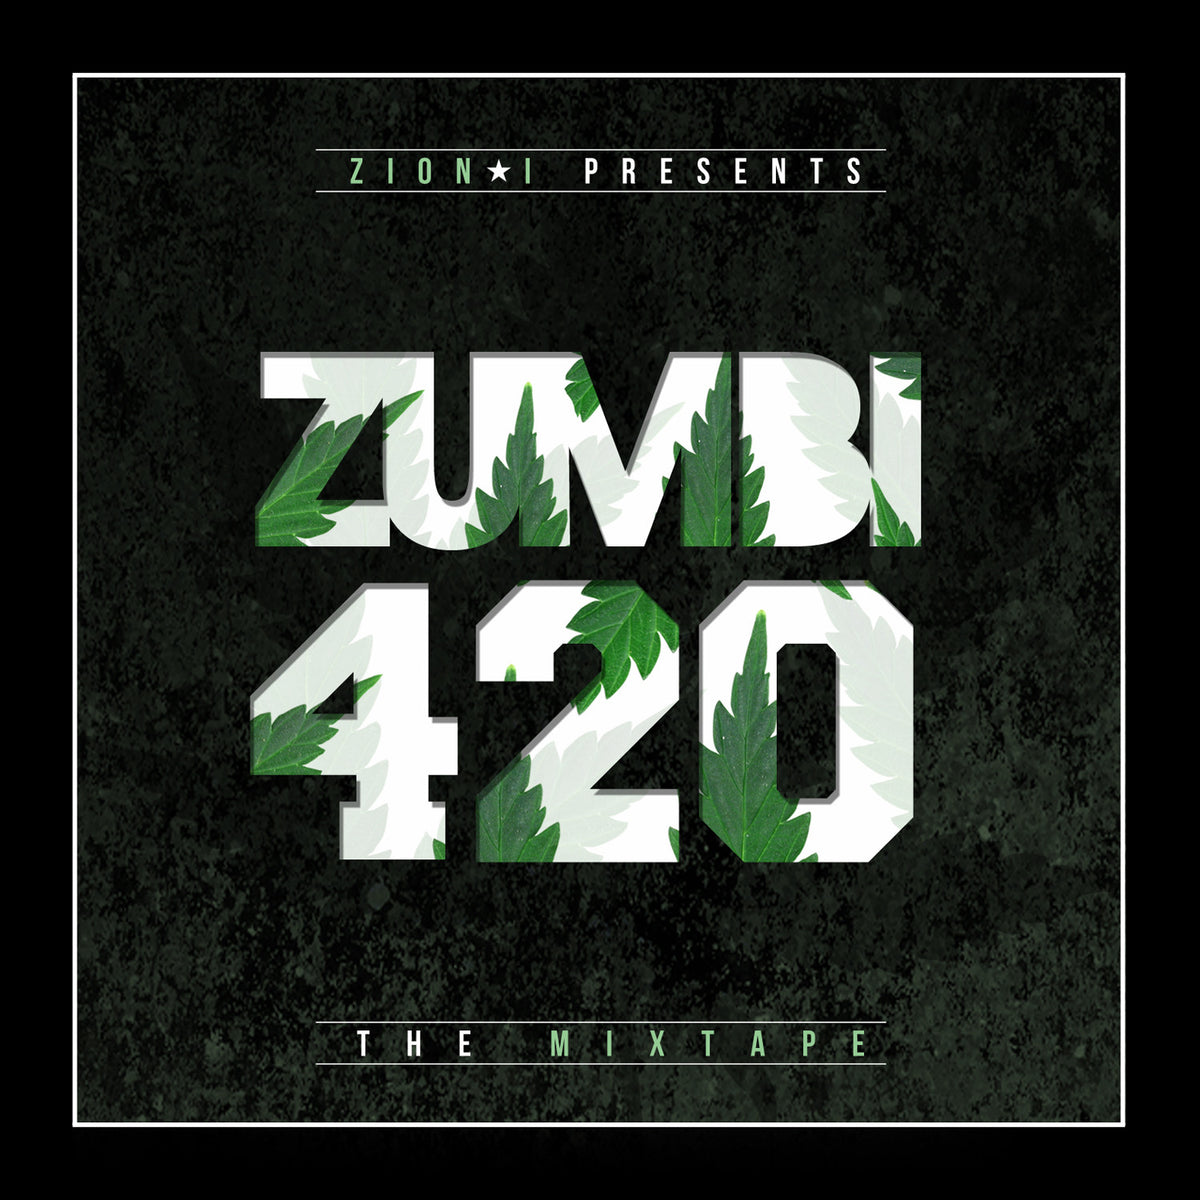 Zion I Presents - Zumbi 420 (Download)